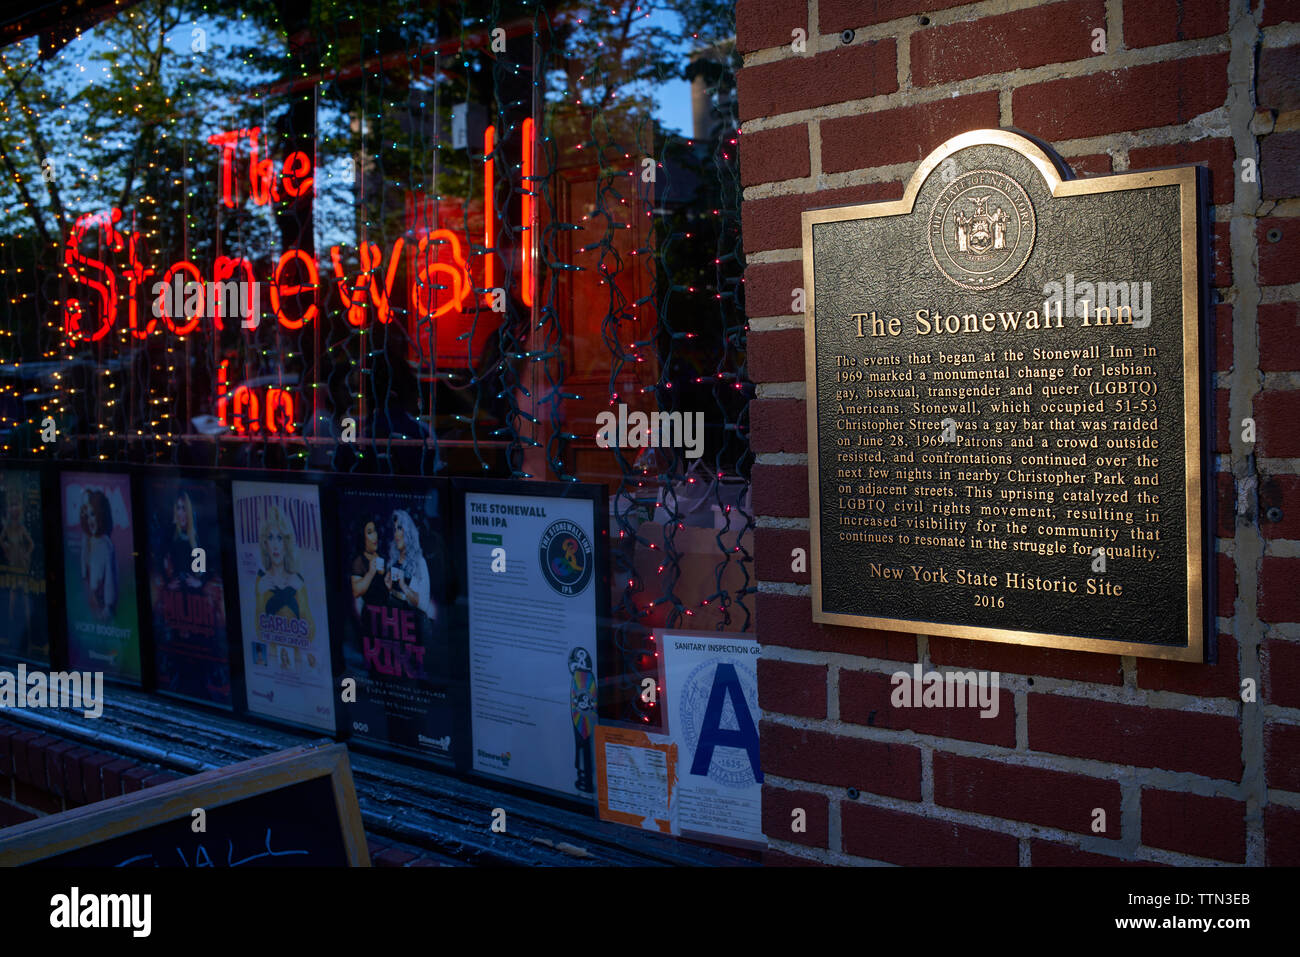 Commemorative plaque at The Stonewall Inn, New York City - Stock Image